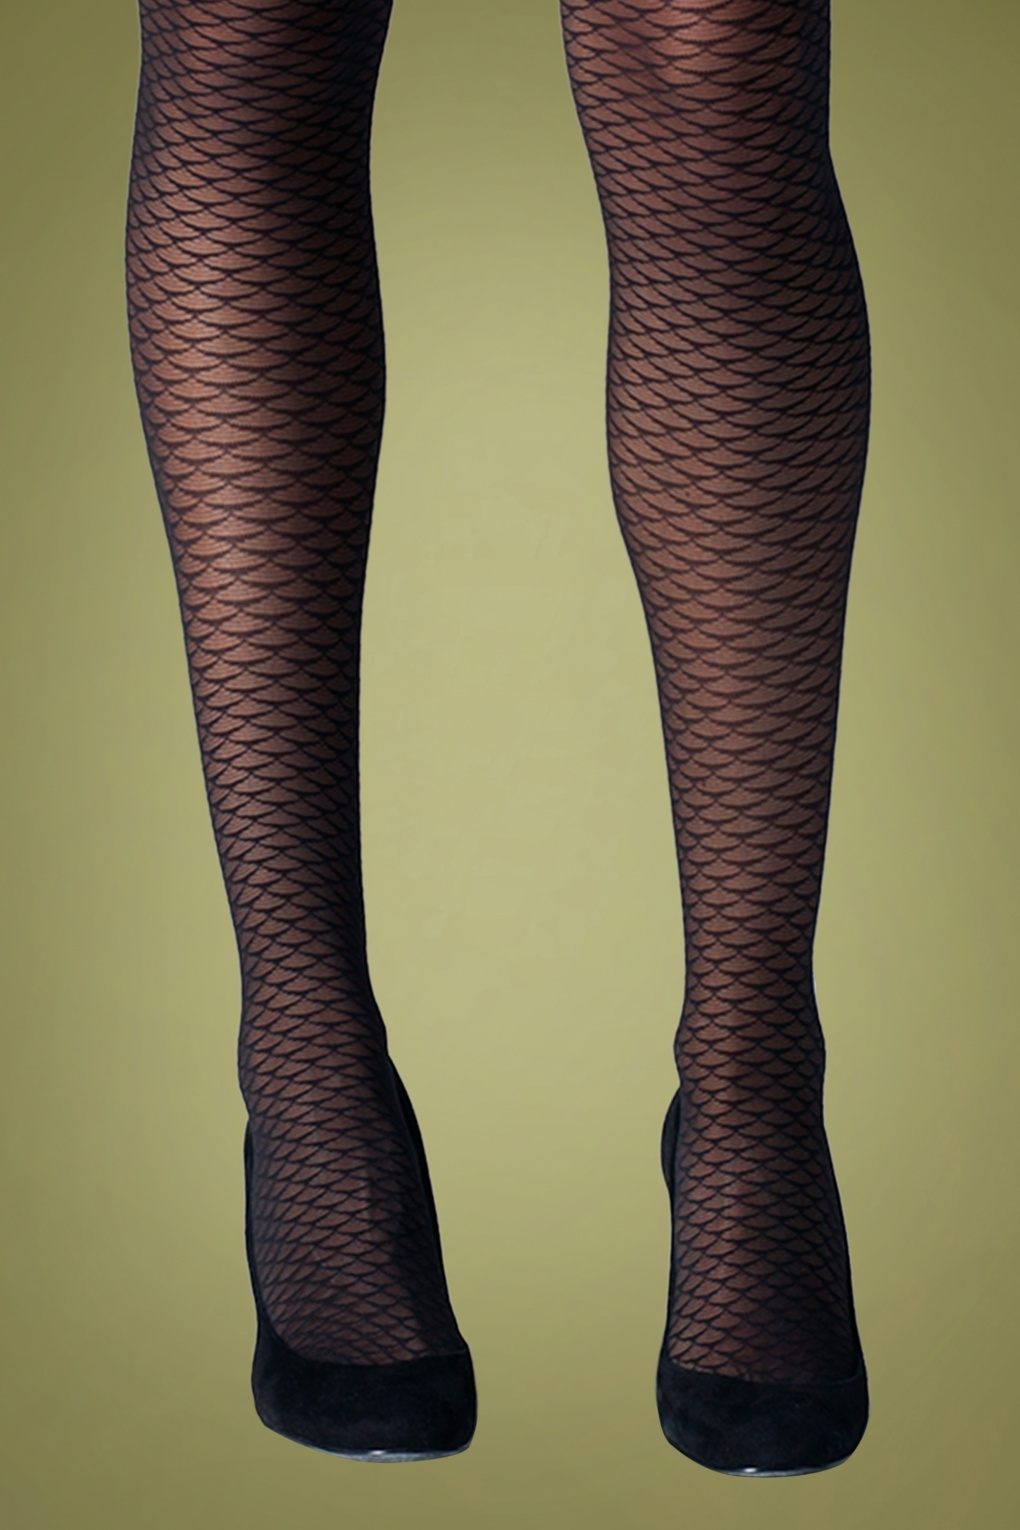 1960s Tights, Stockings, Panty Hose, Knee High Socks 60s Mermaid Tights in Black £8.56 AT vintagedancer.com